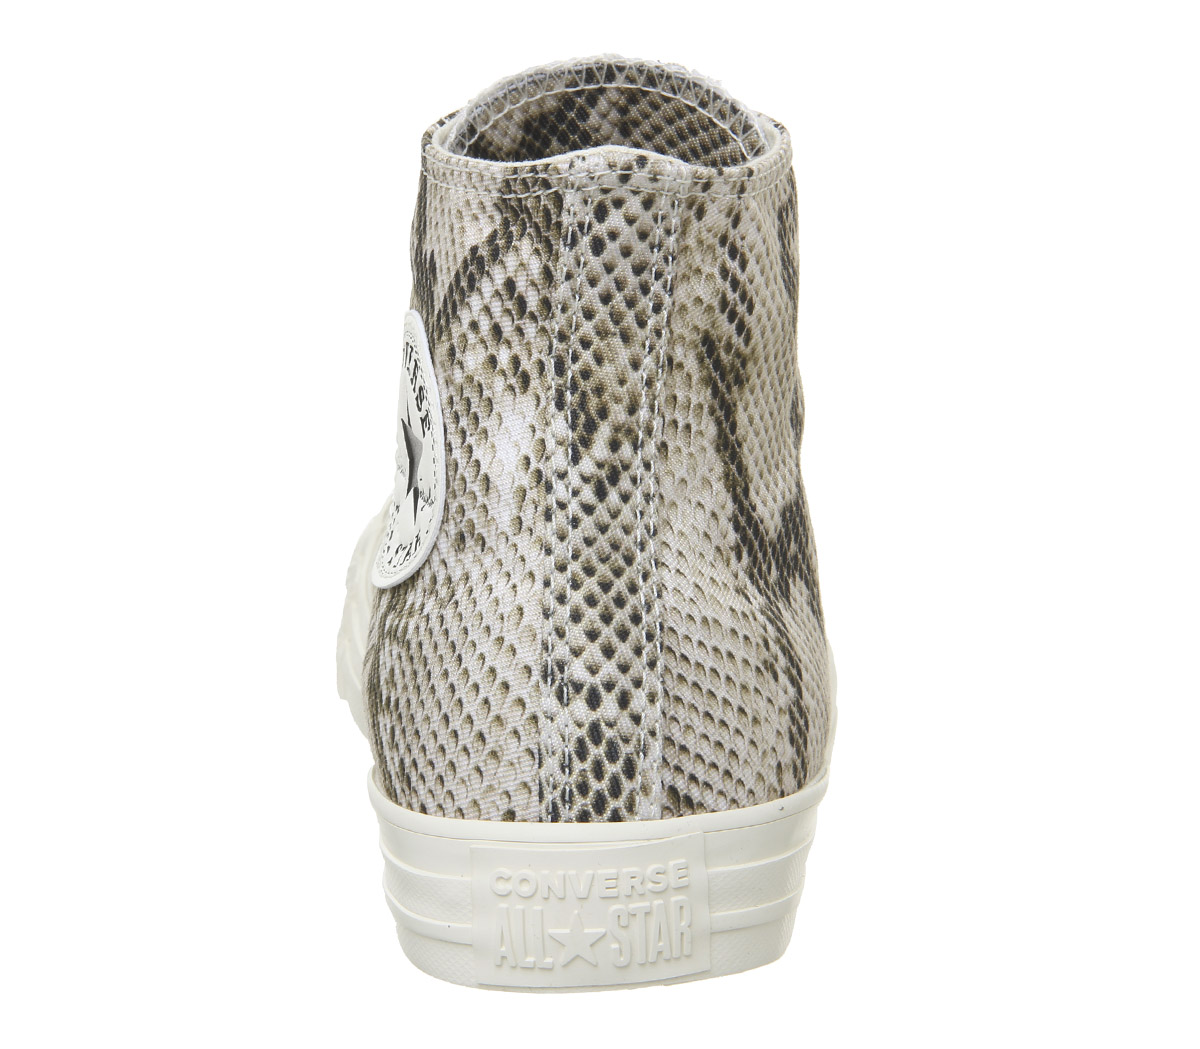 Womens-Converse-Converse-All-Star-Hi-Trainers-Egret-Black-Snake-Trainers-Shoes thumbnail 3